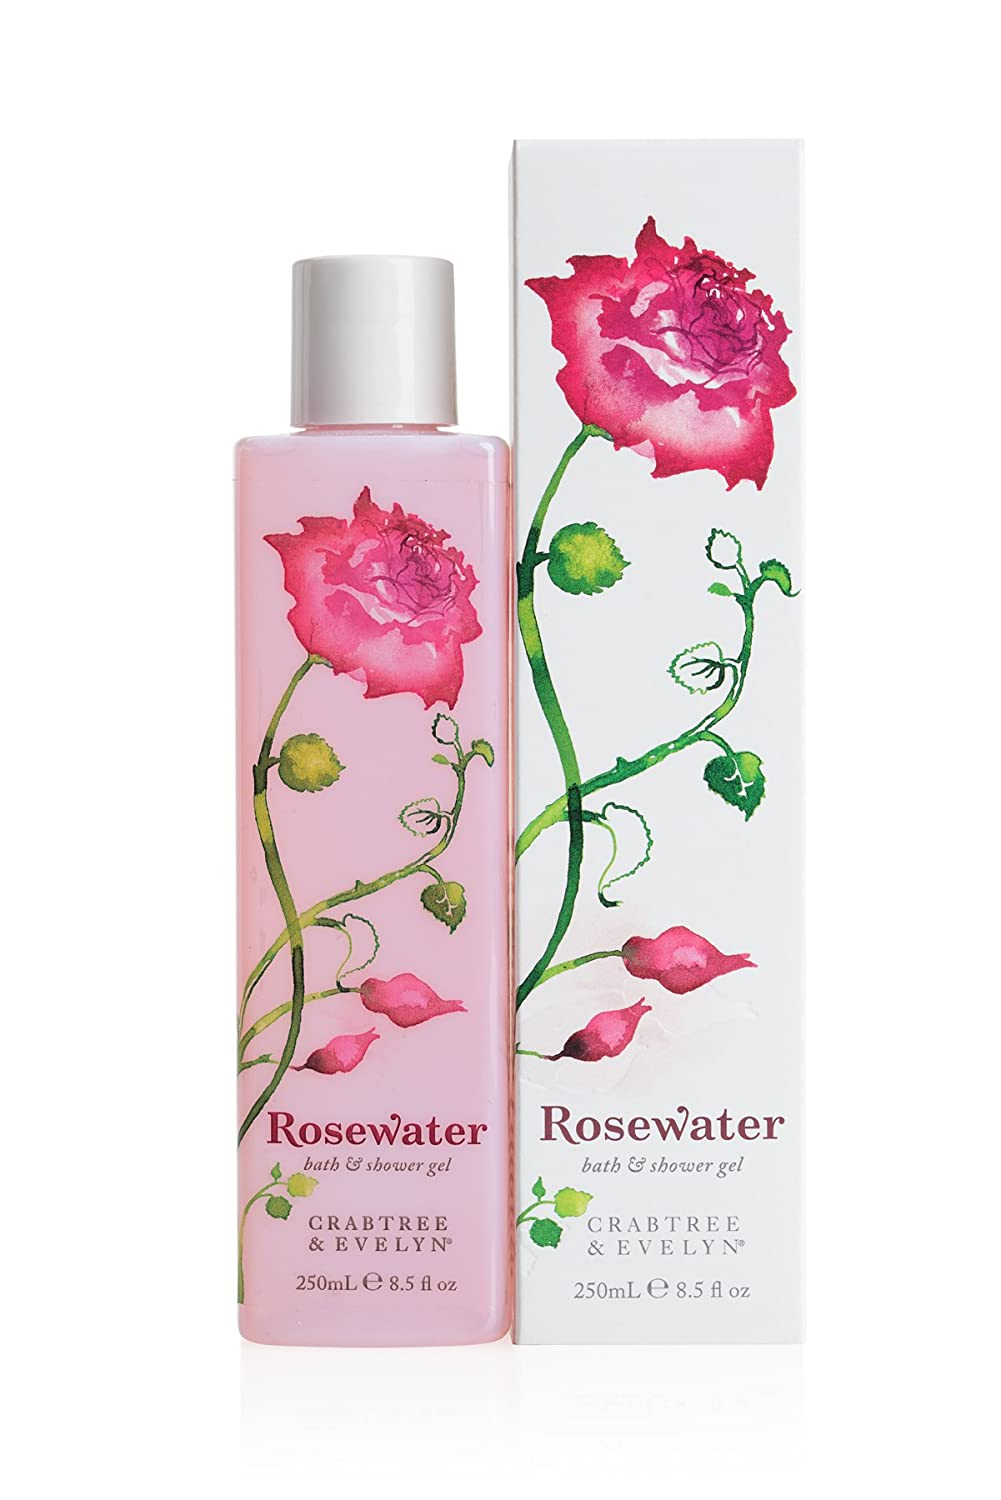 amazon com crabtree evelyn bath and shower gel rosewater 8 5 amazon com crabtree evelyn bath and shower gel rosewater 8 5 fl oz luxury beauty